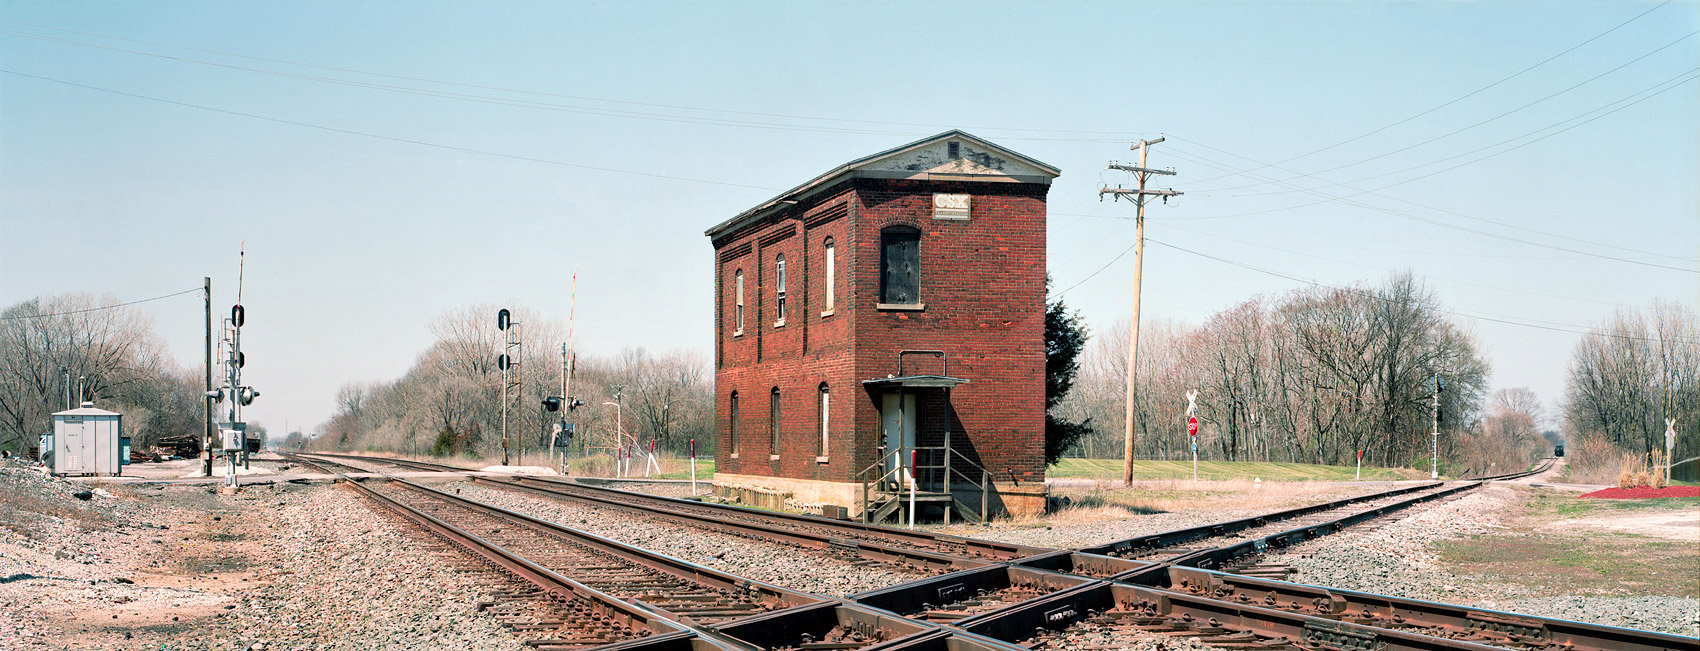 Tower at Diamond Crossing, Walkerton, Indiana